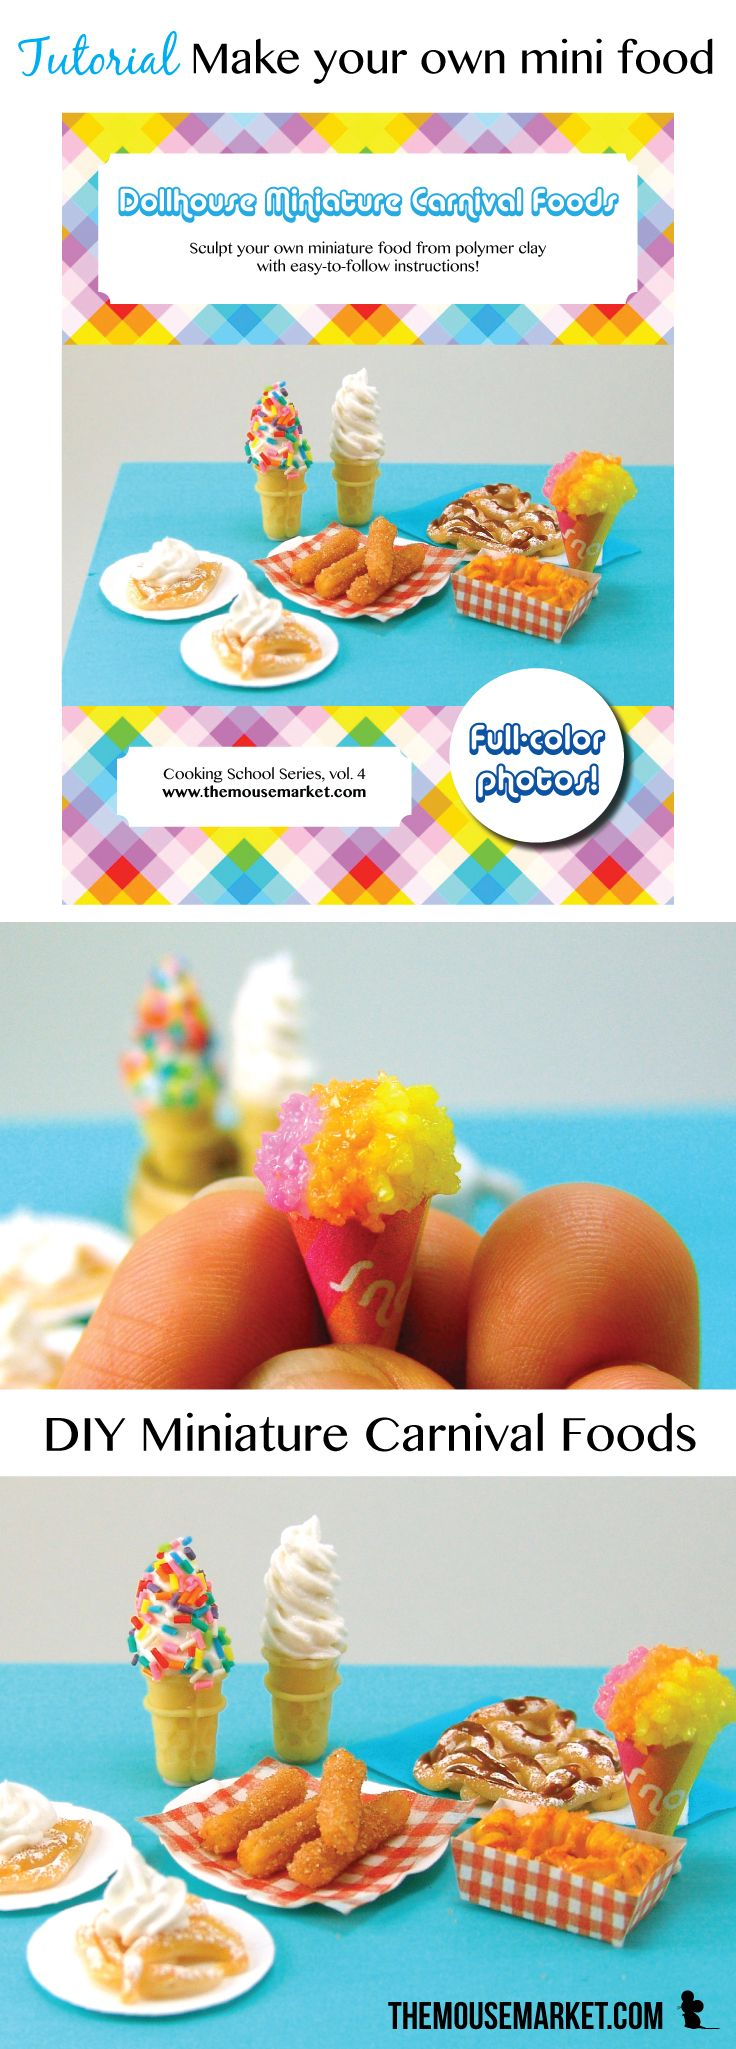 DIY Make your own miniature carnival foods (funnel cake, soft serve ice cream, and more) with this easy-to-follow tutorial.